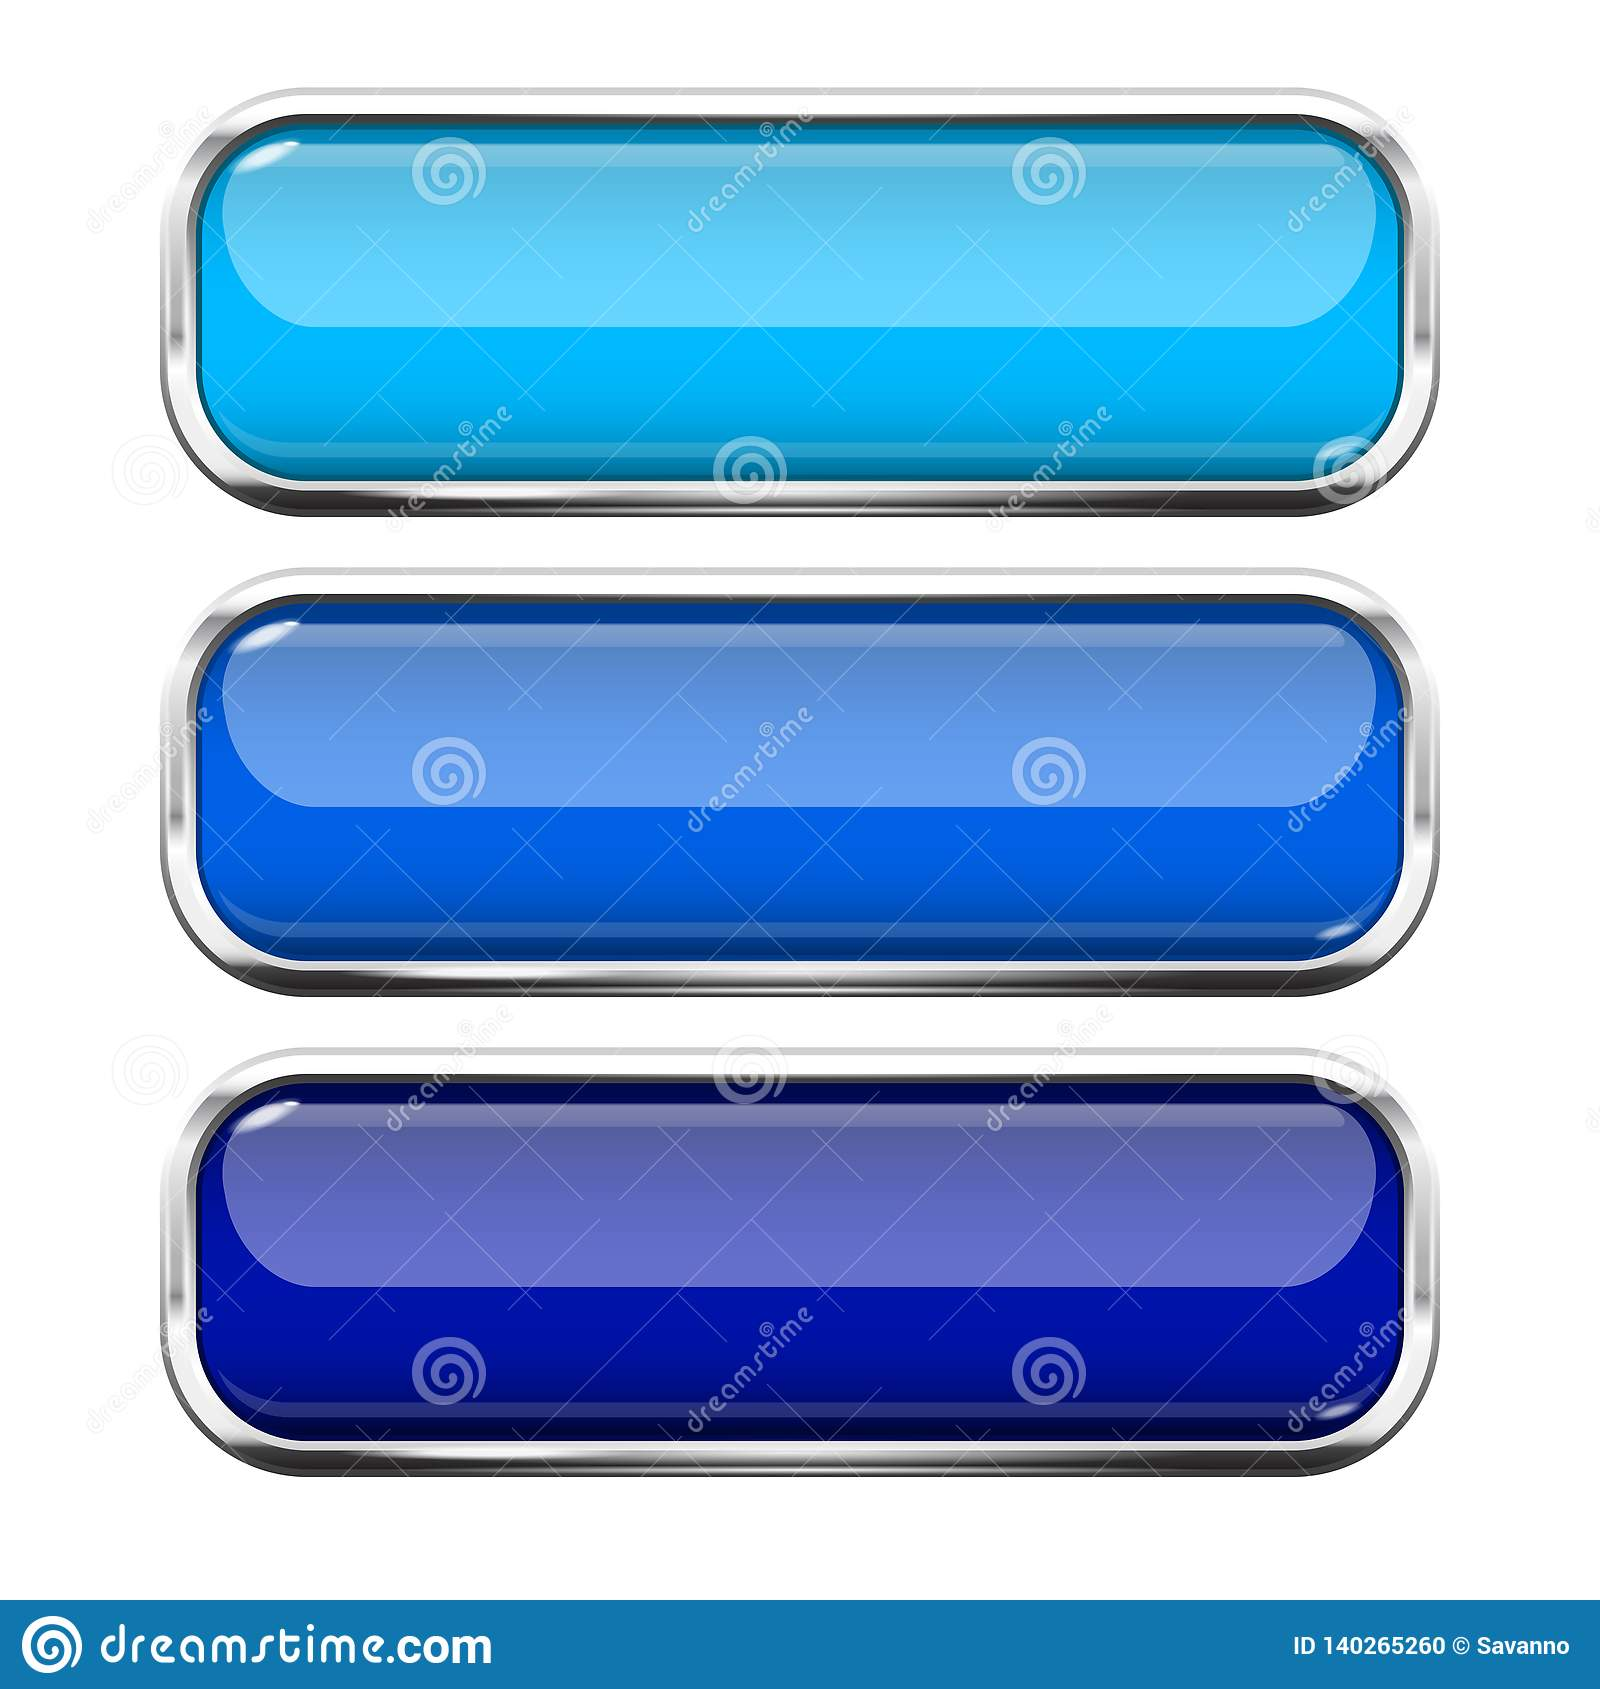 Blue glass buttons. Web 3d shiny rectangle icons with chrome frame